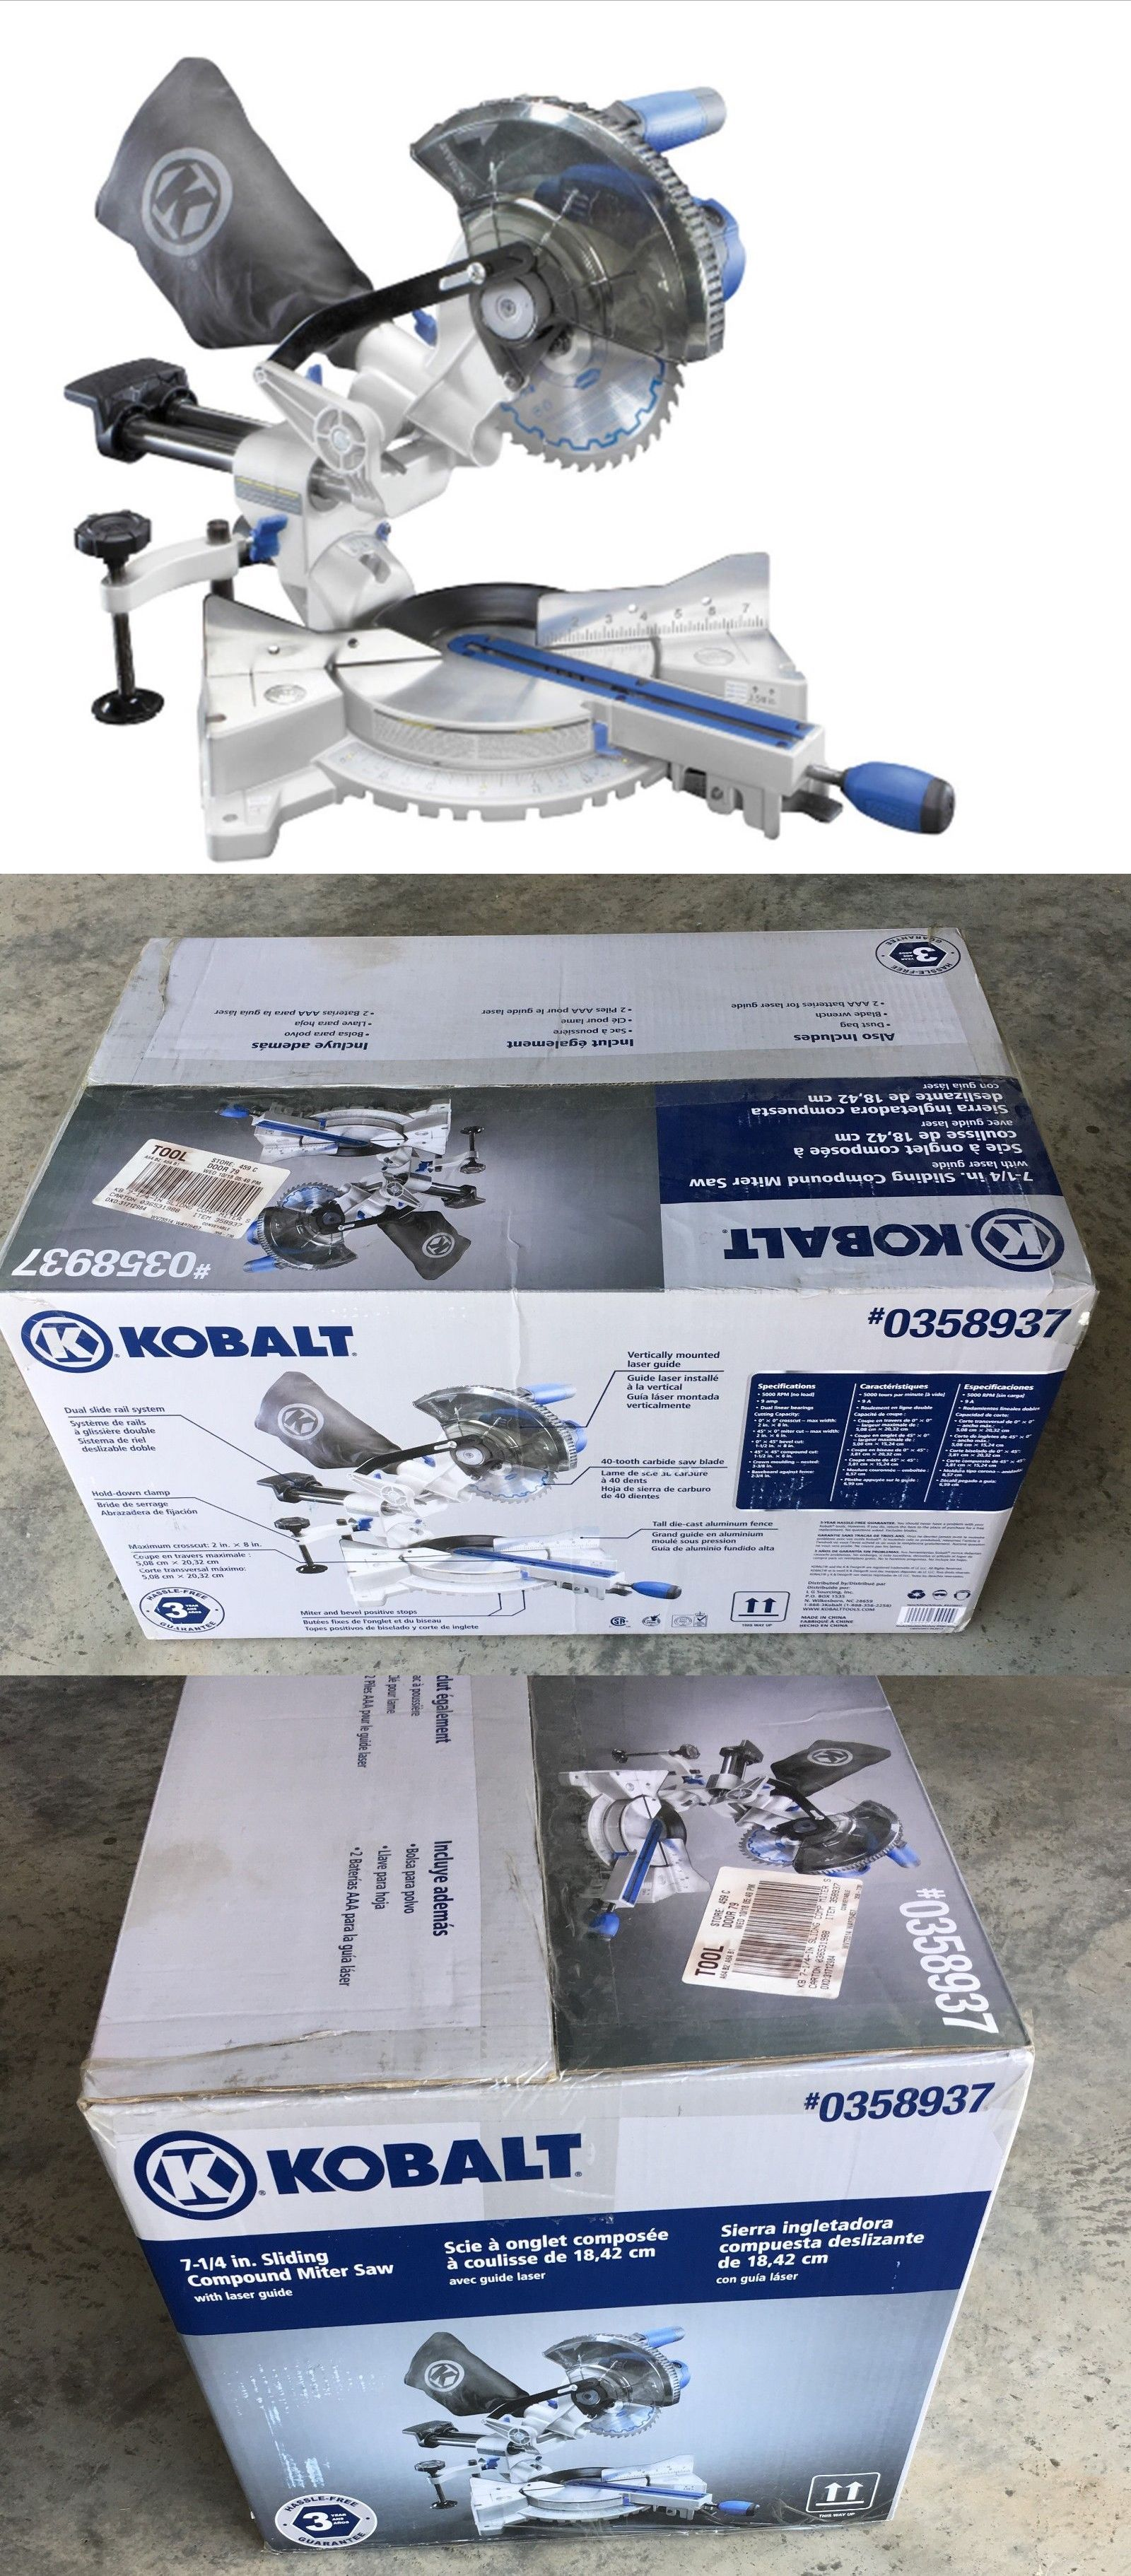 Kobalt 7 1 4 In 9 Amp Single Bevel Sliding Laser Compound Miter Saw Sm1850lw Compound Mitre Saw Miter Saw Sliding Compound Miter Saw